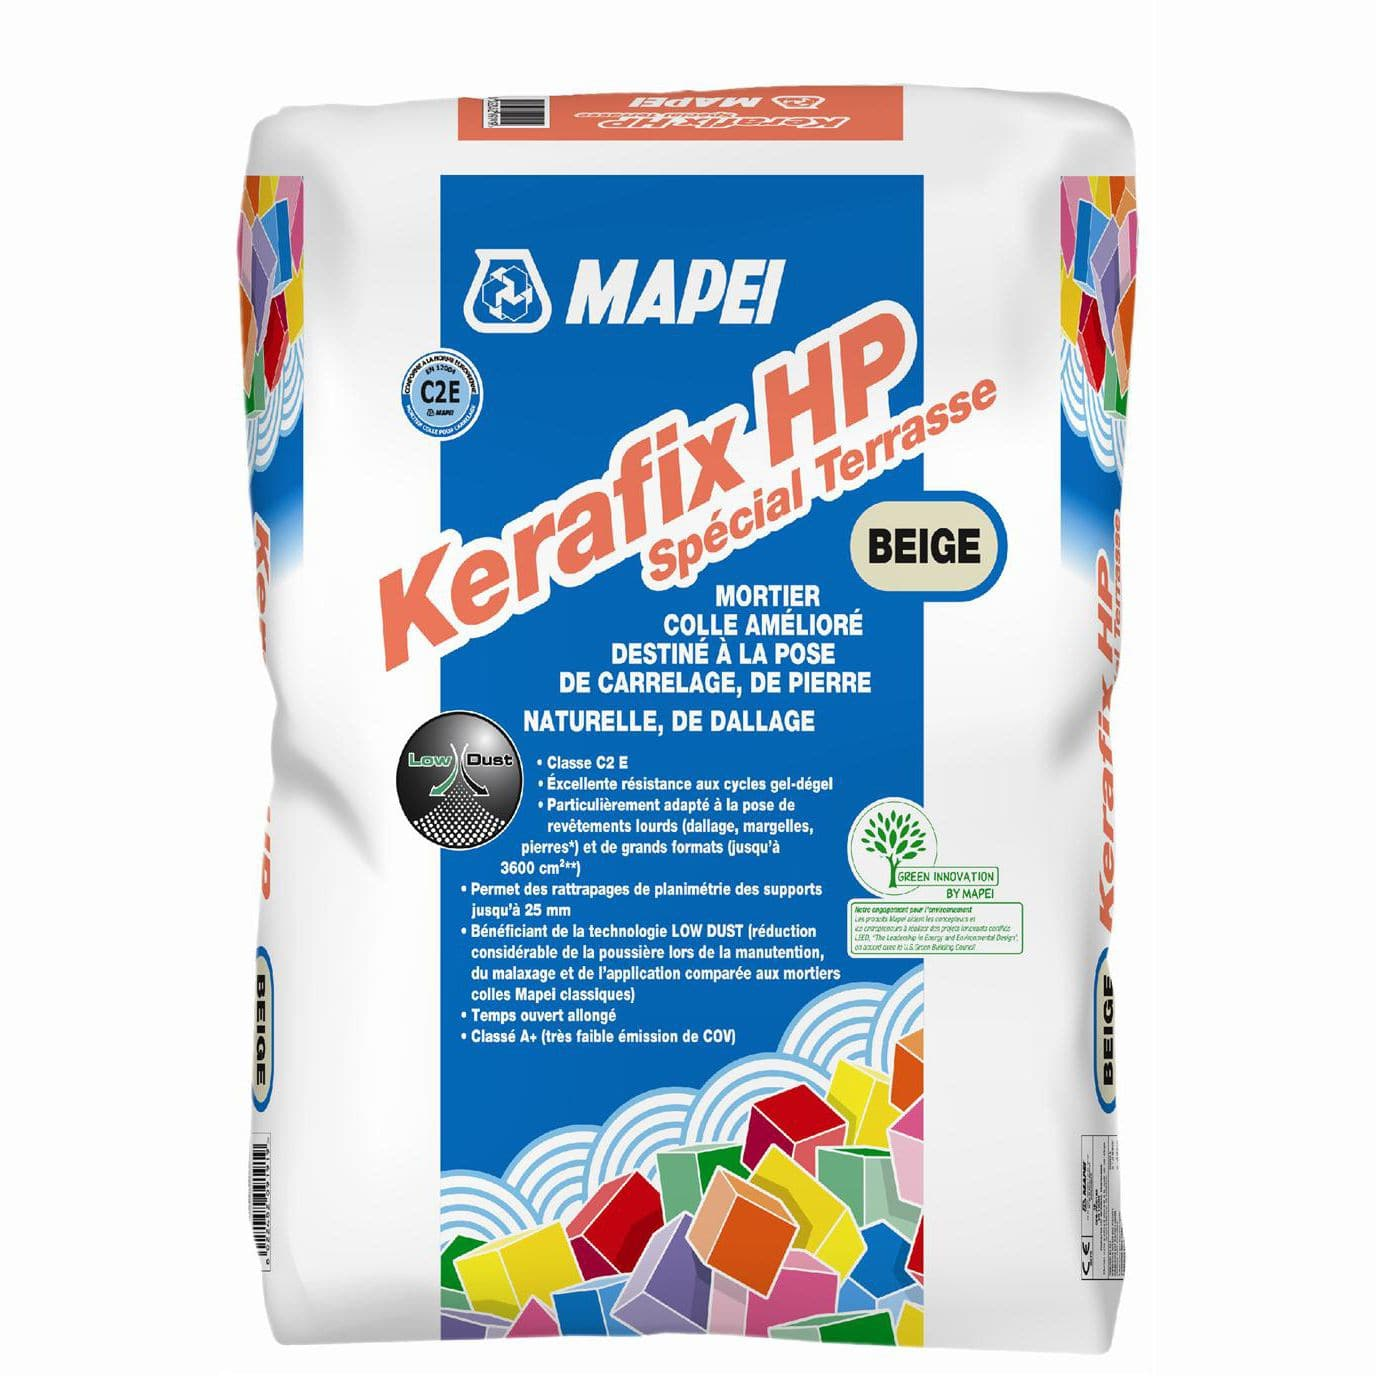 Fixing Adhesive Mortar For Tiles For Concrete For Flooring